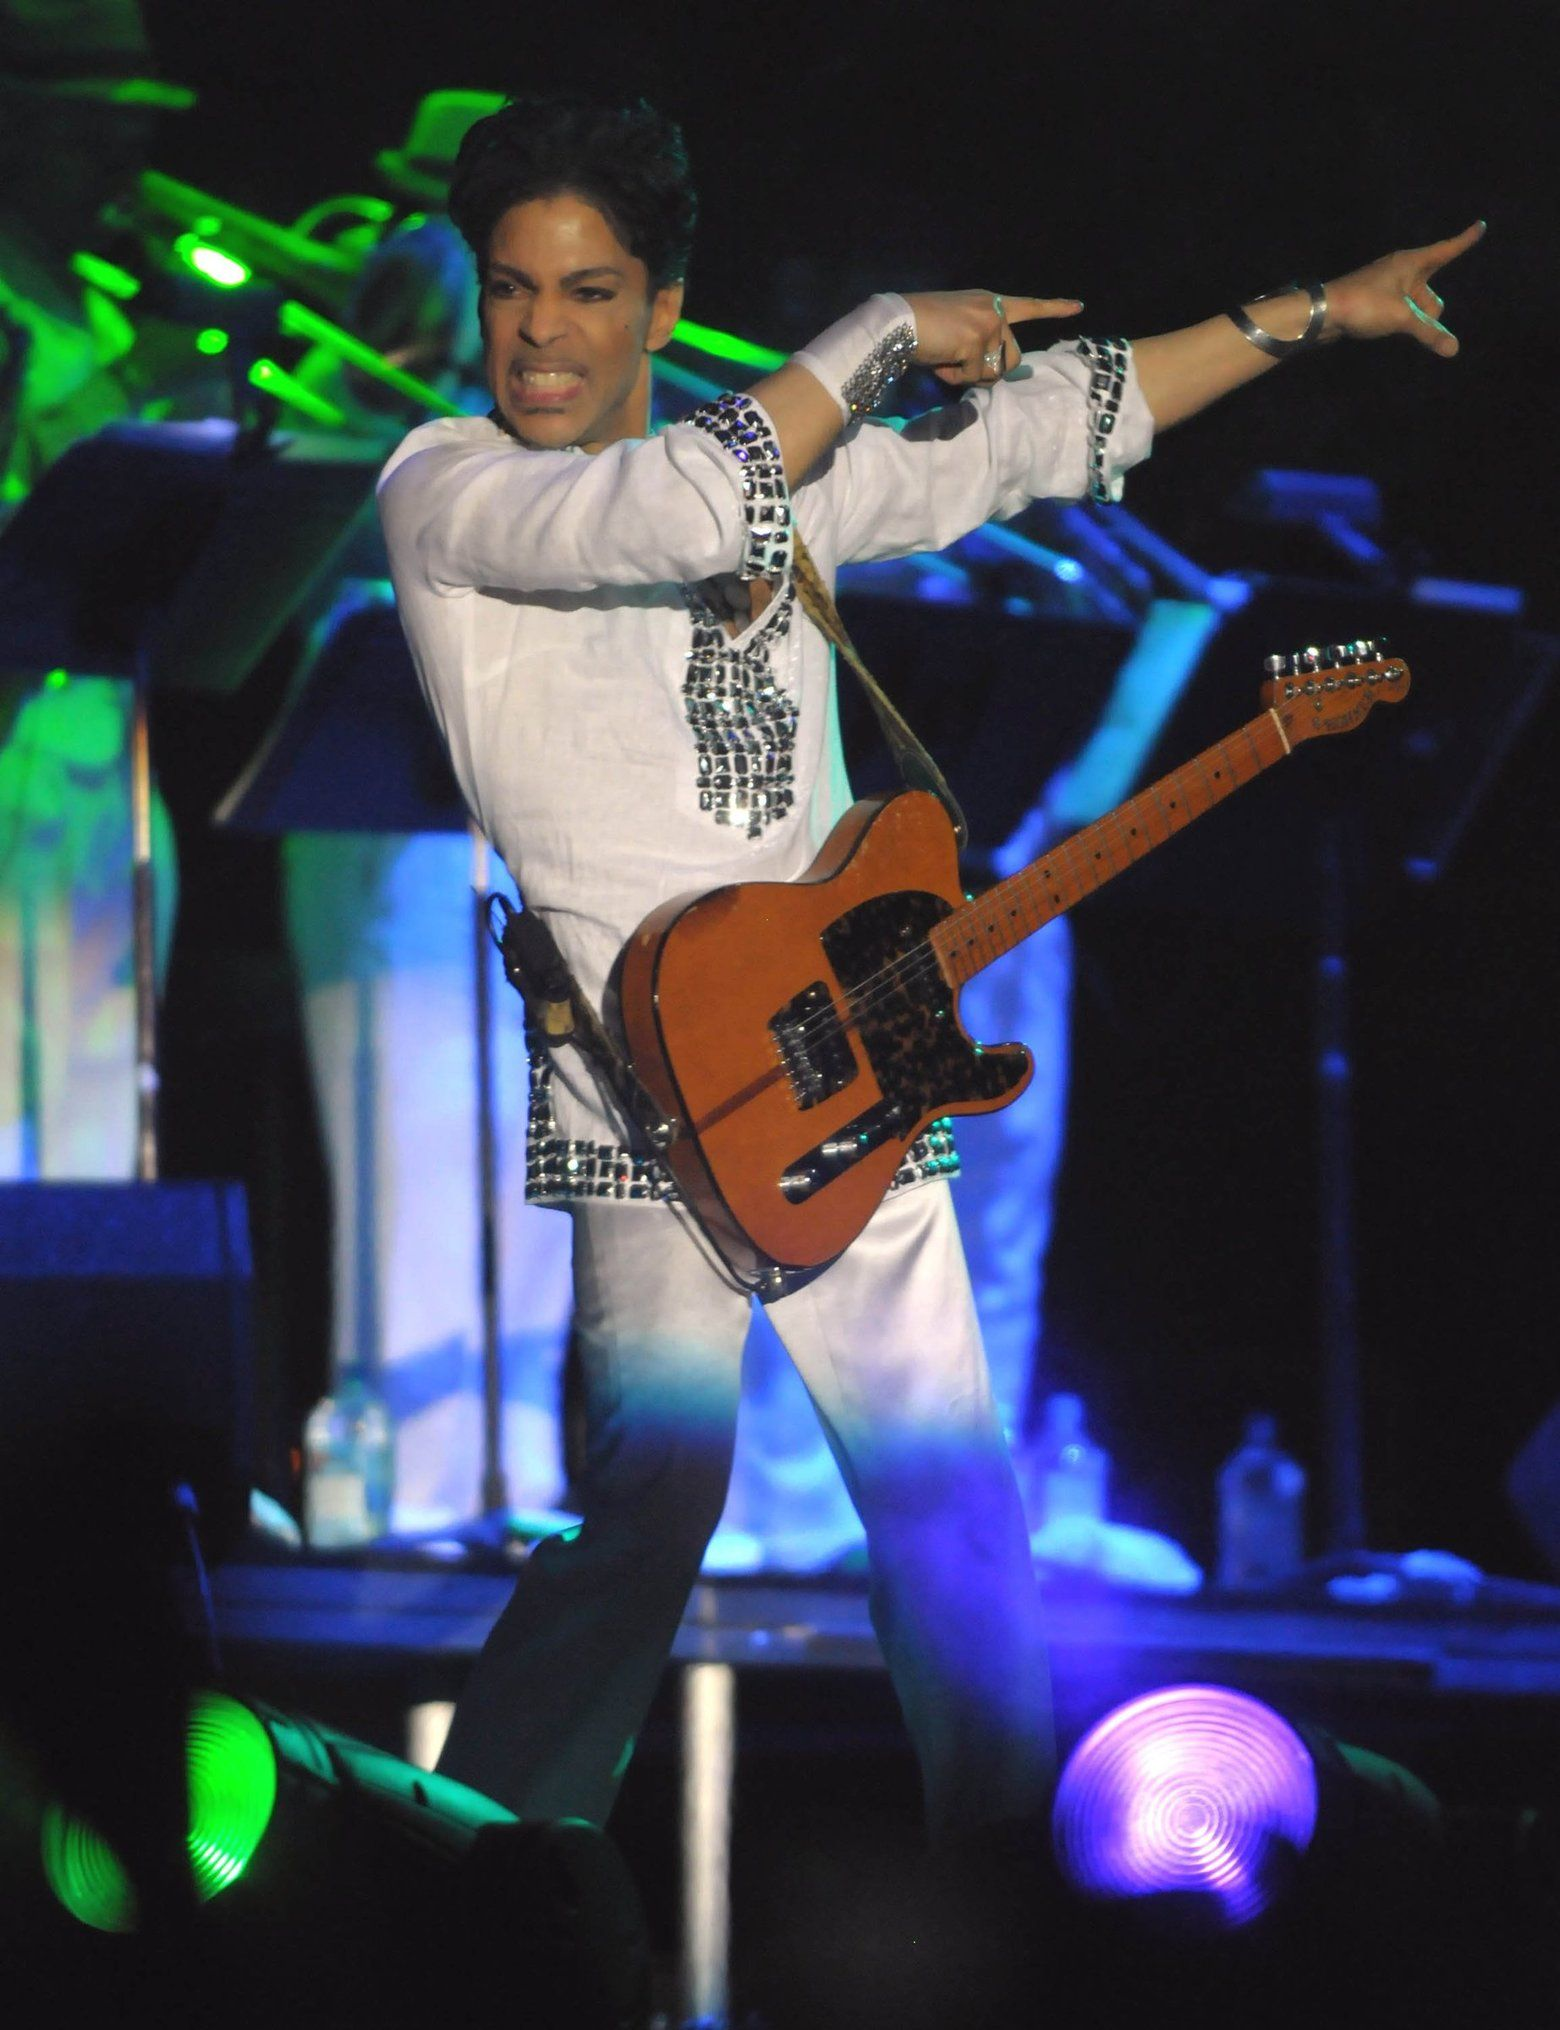 Prince performs at Coachella Valley Music and Arts Festival on April 26, 2008, in Indio, Calif. The musician was found dead in his home in Chanhassen, Minn., on Thursday.